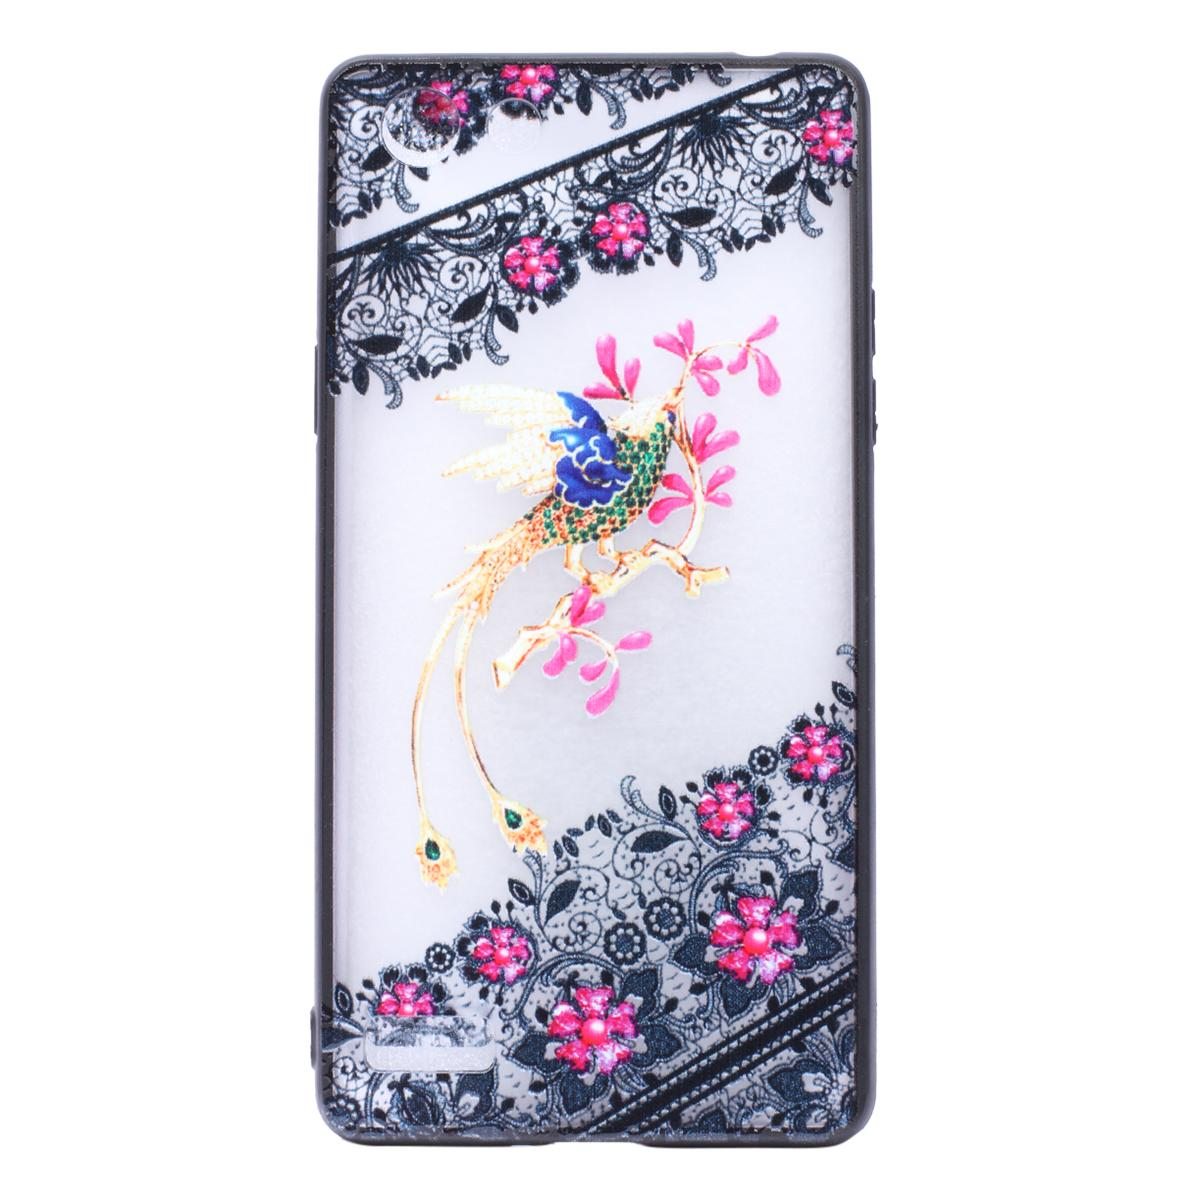 separation shoes 33c6e 8c61f Back Cover for Vivo Y53